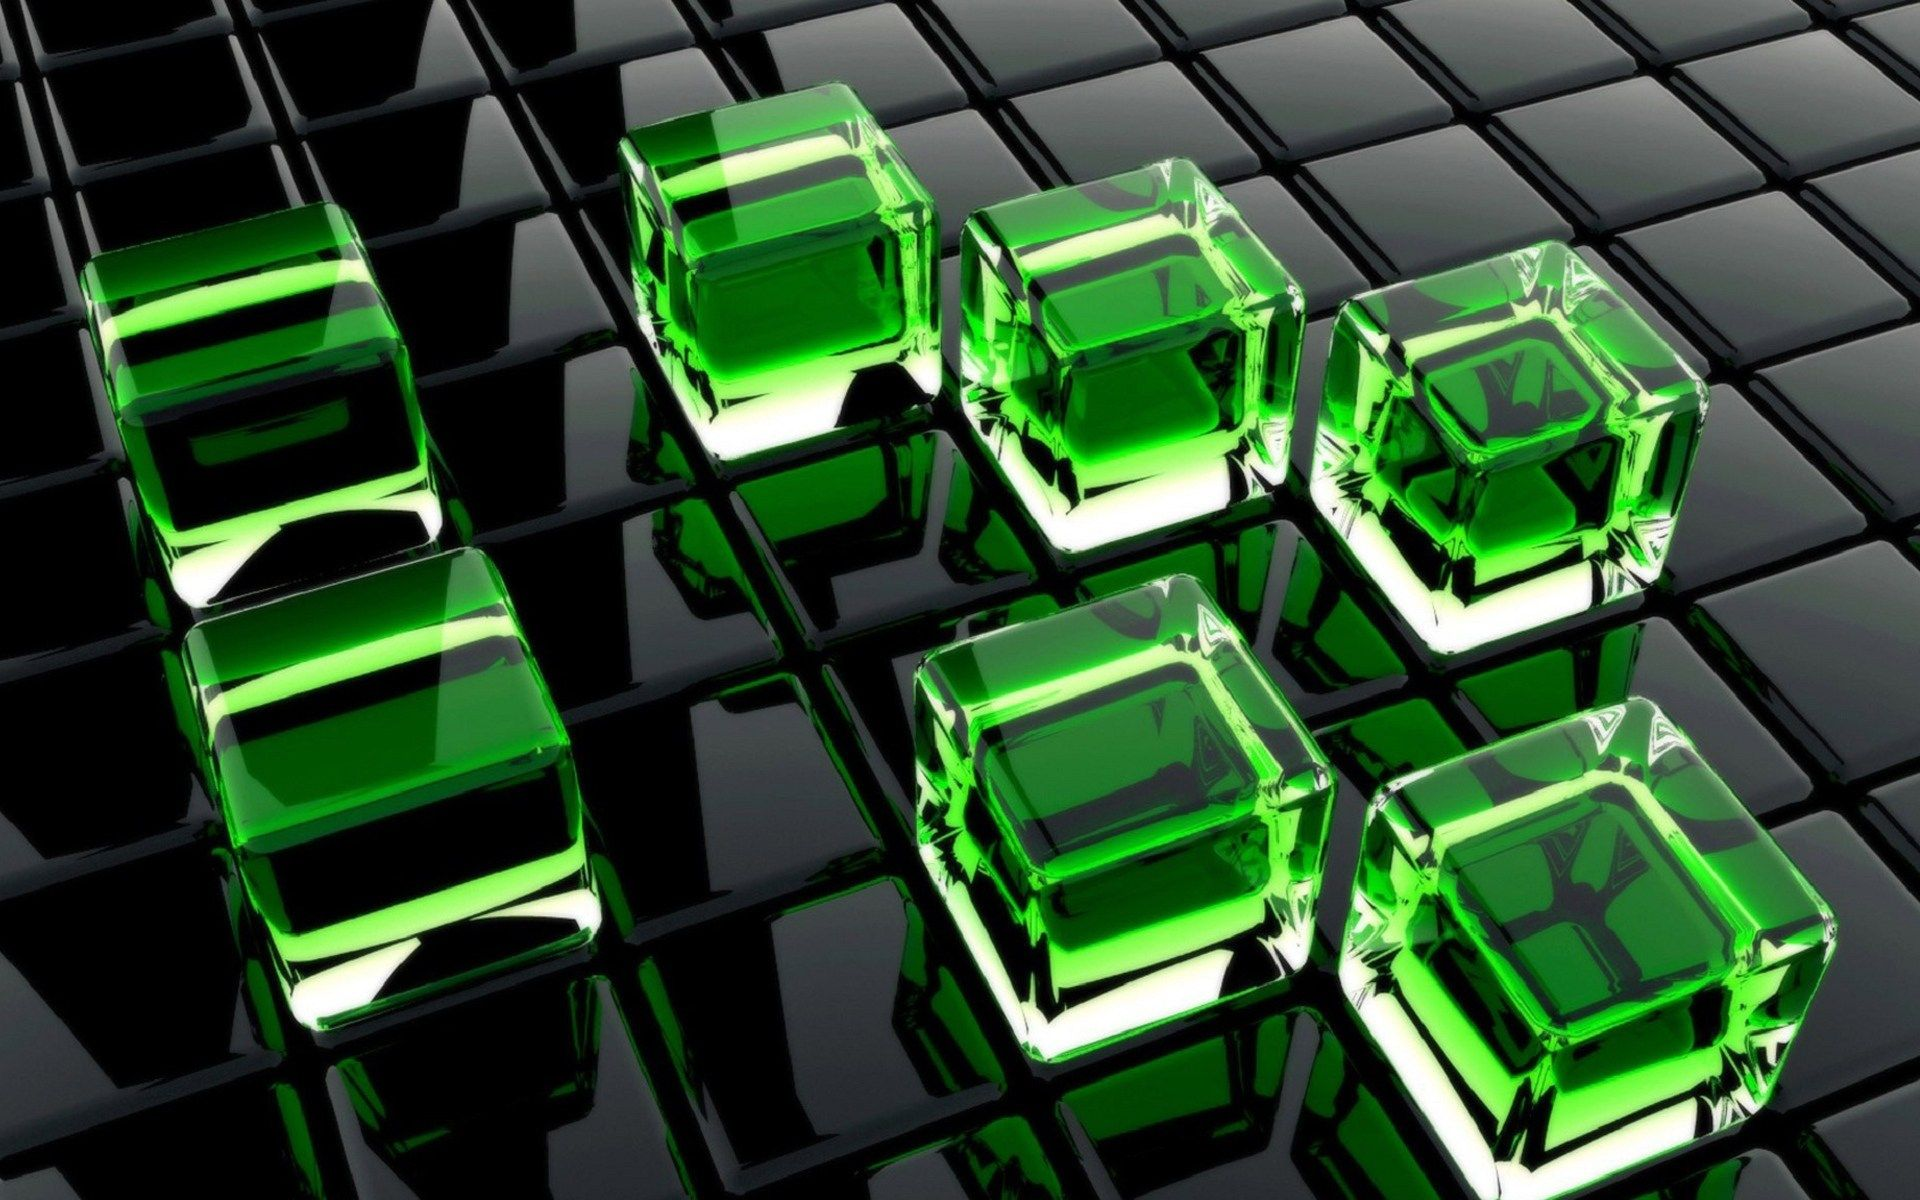 3d Cube Hd Wallpapers Free Download The Cool Art 3d Cube